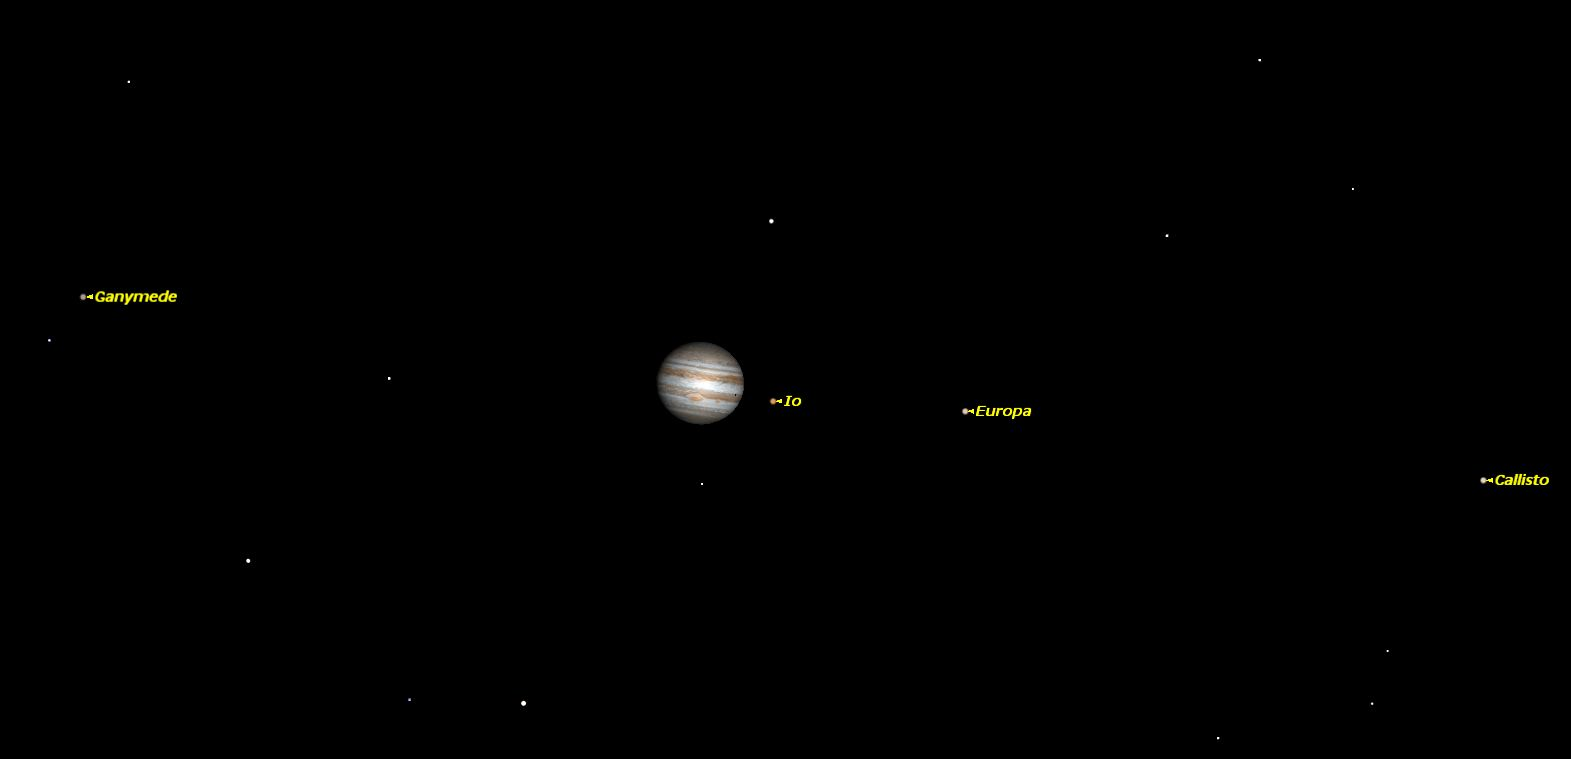 Jupiter On February 28, 2014 at 8 p.m.